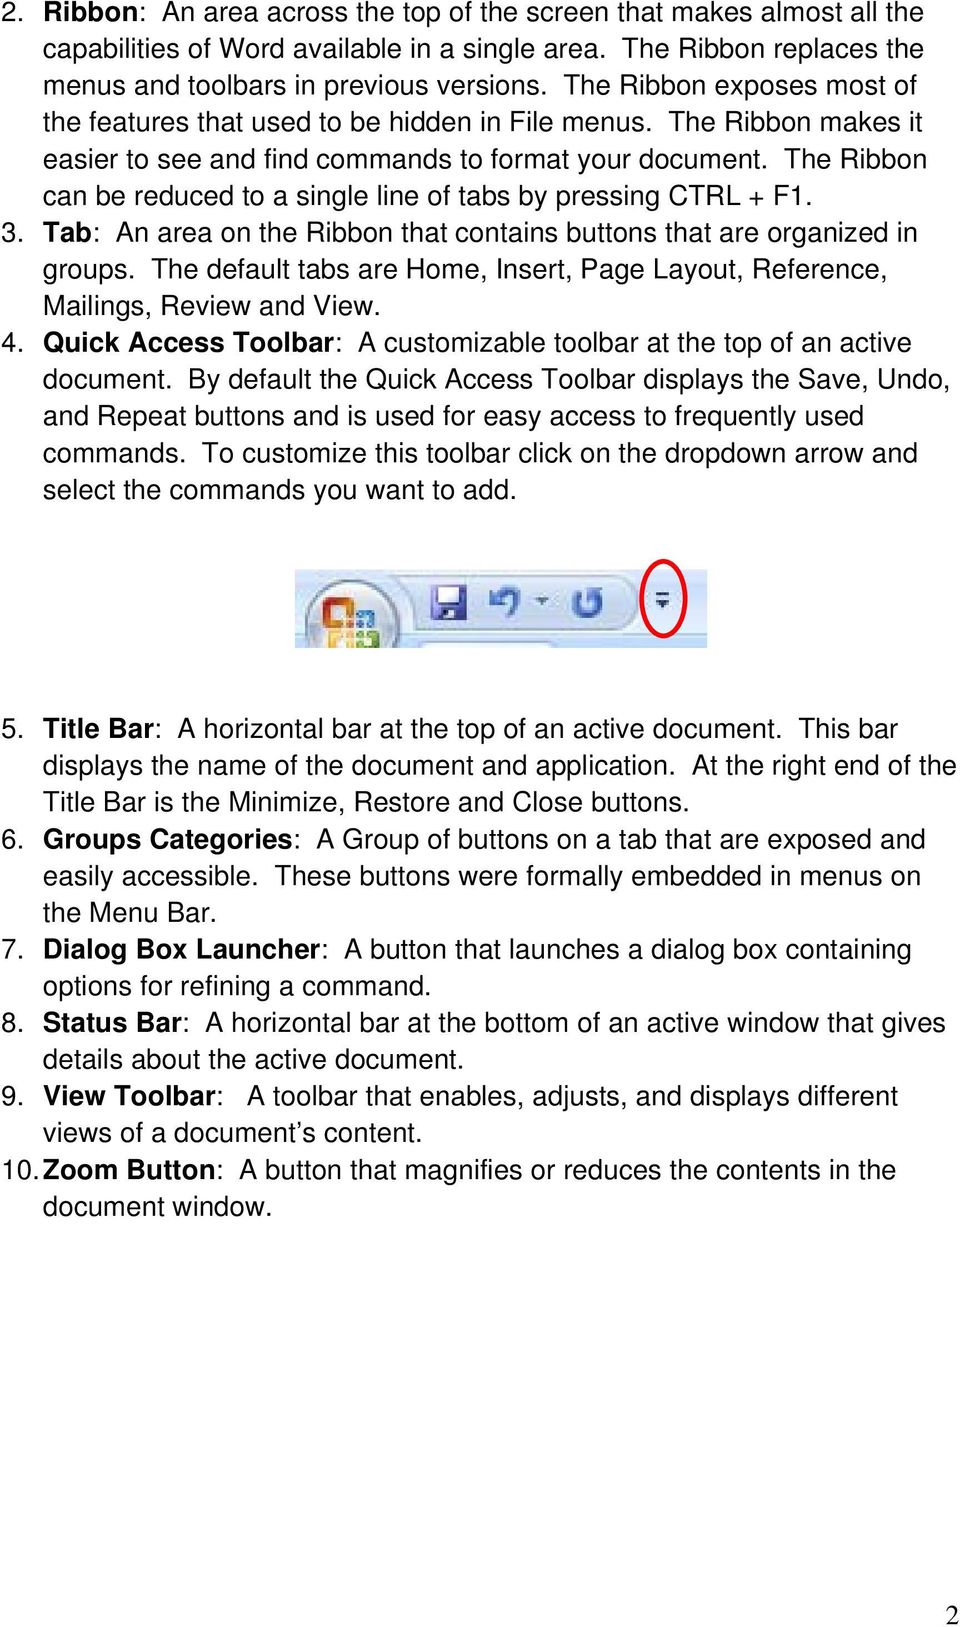 The Ribbon can be reduced to a single line of tabs by pressing CTRL + F1. 3. Tab: An area on the Ribbon that contains buttons that are organized in groups.